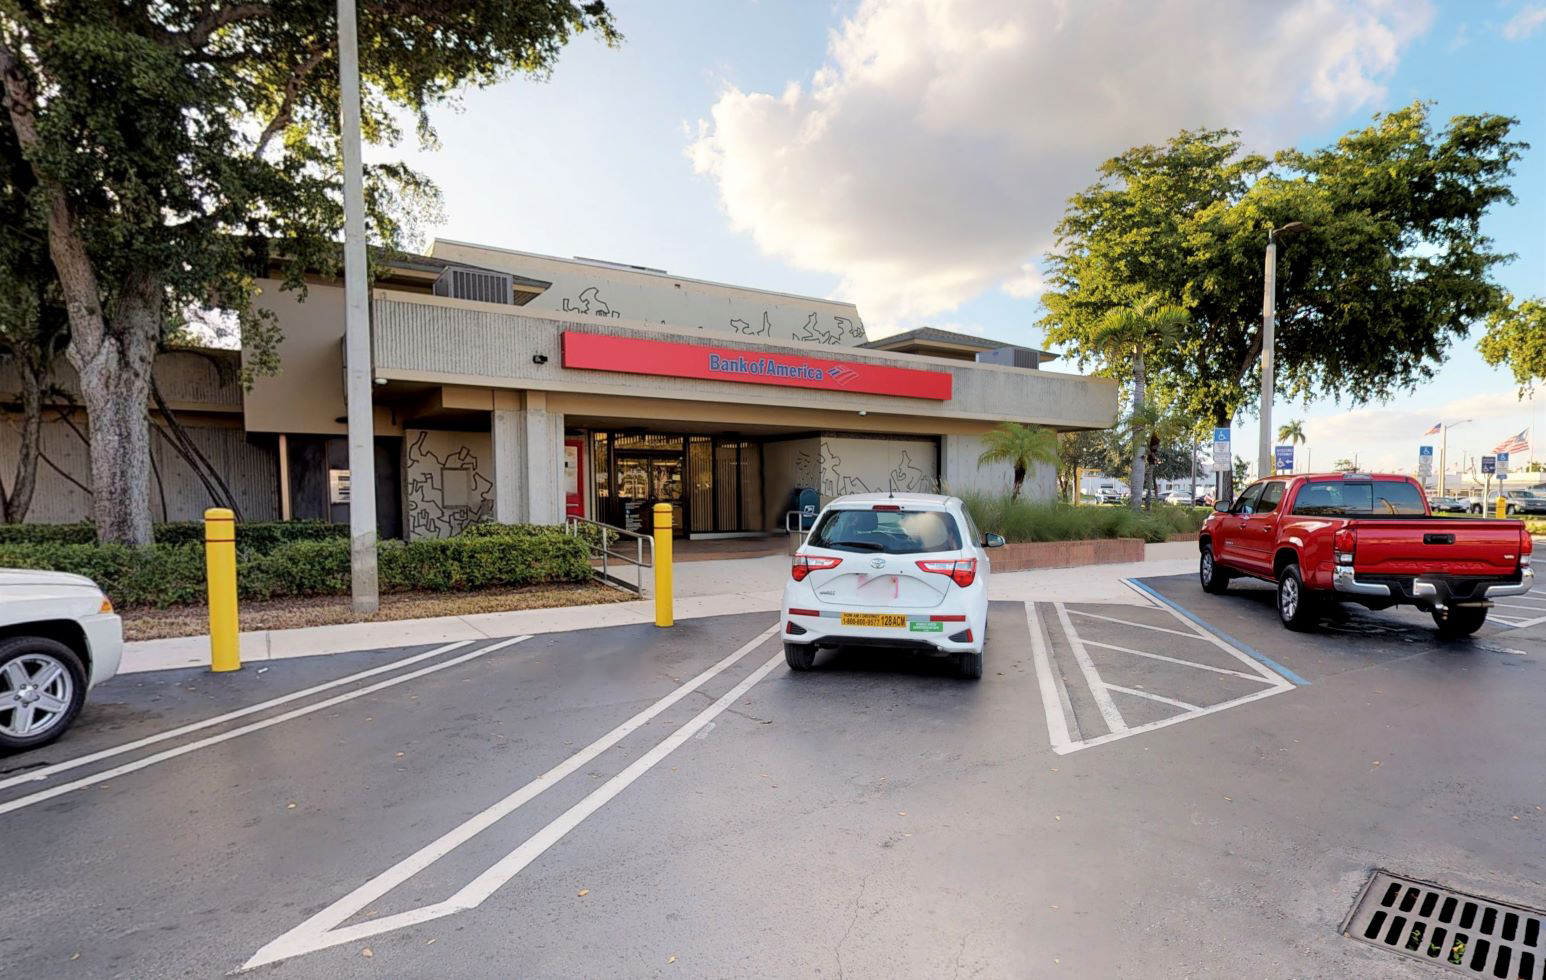 Bank of America financial center with drive-thru ATM | 16320 NW 57th Ave, Hialeah, FL 33014